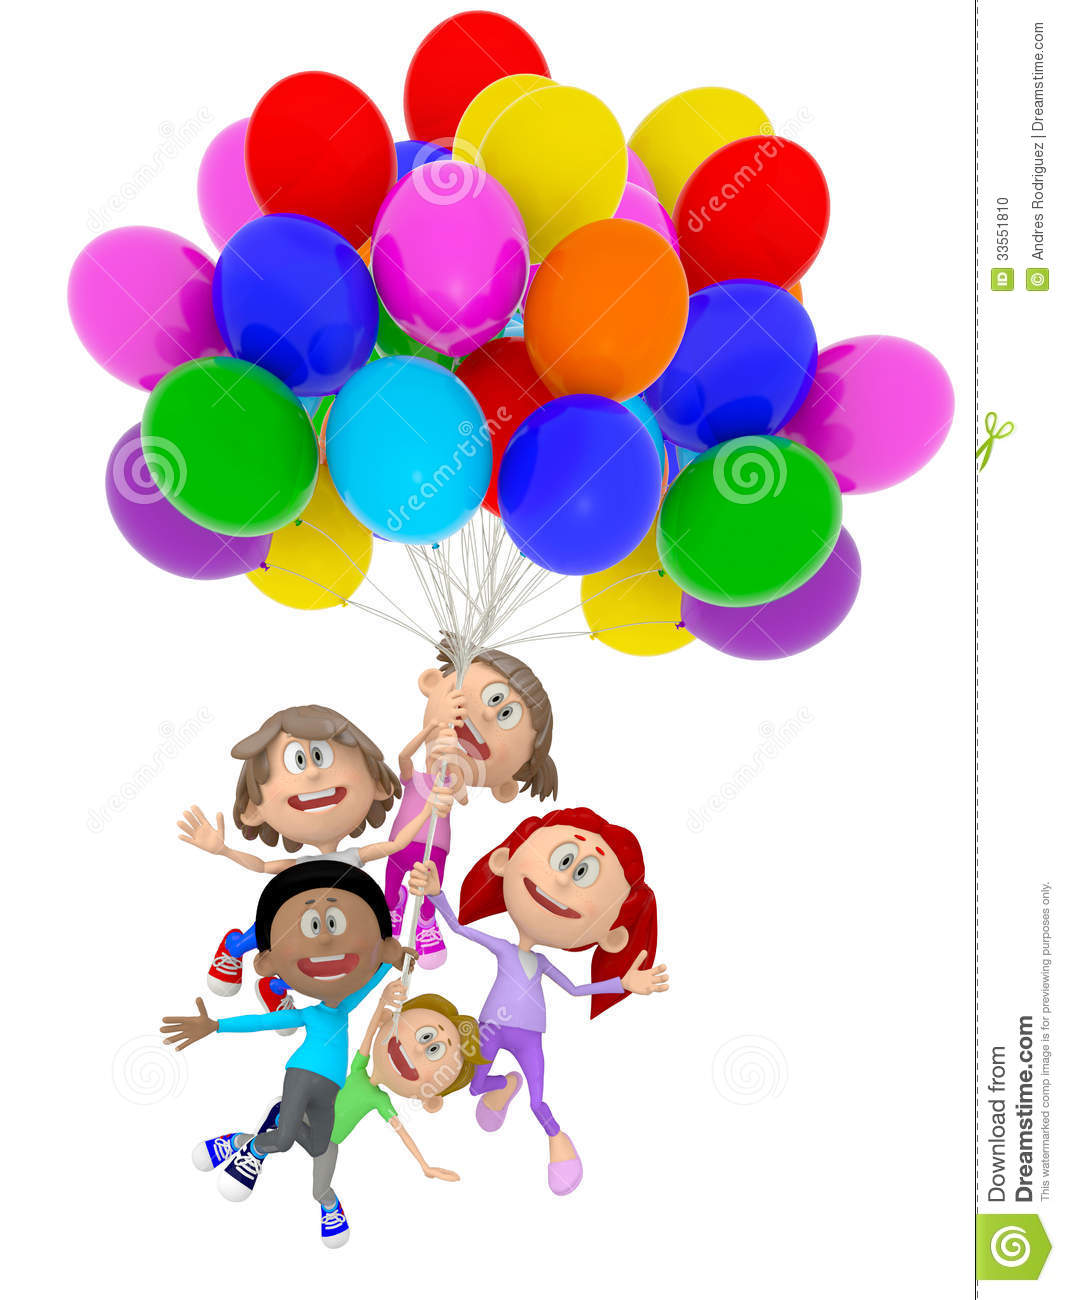 3D group of kids with balloons having fun - isolated over white.